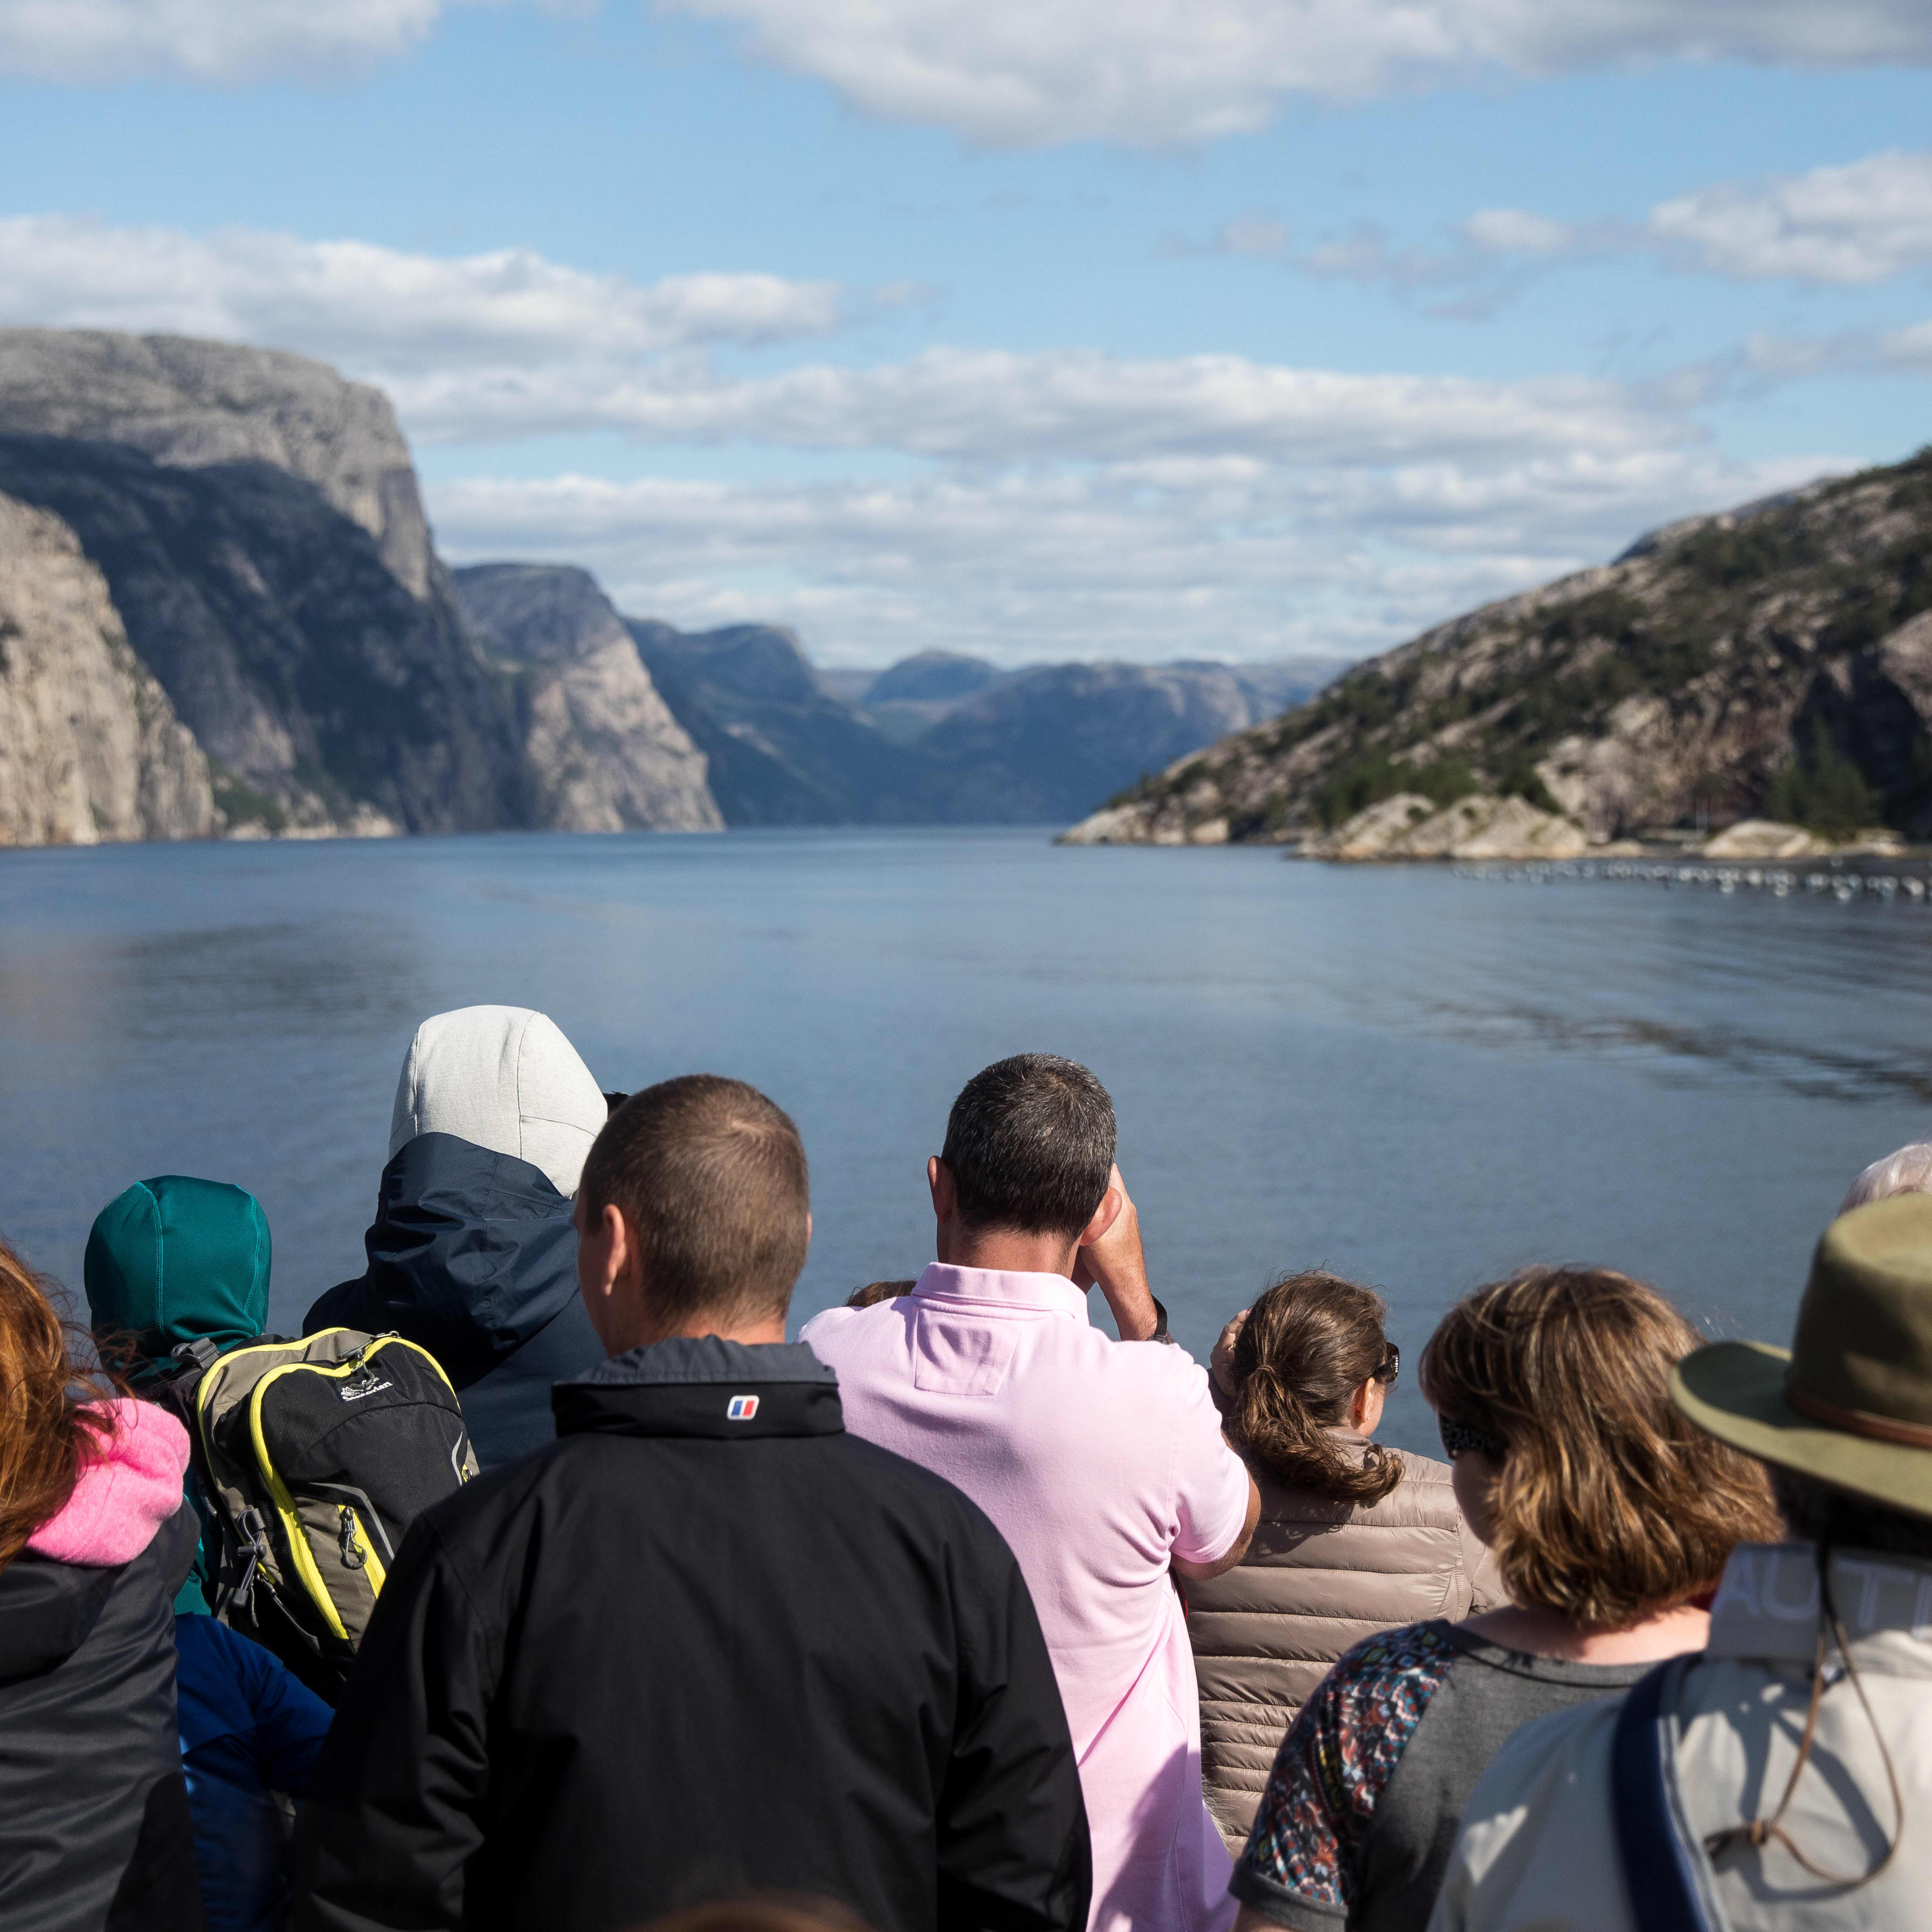 Busy tourists photographing the Lysefjord on a sunny day.